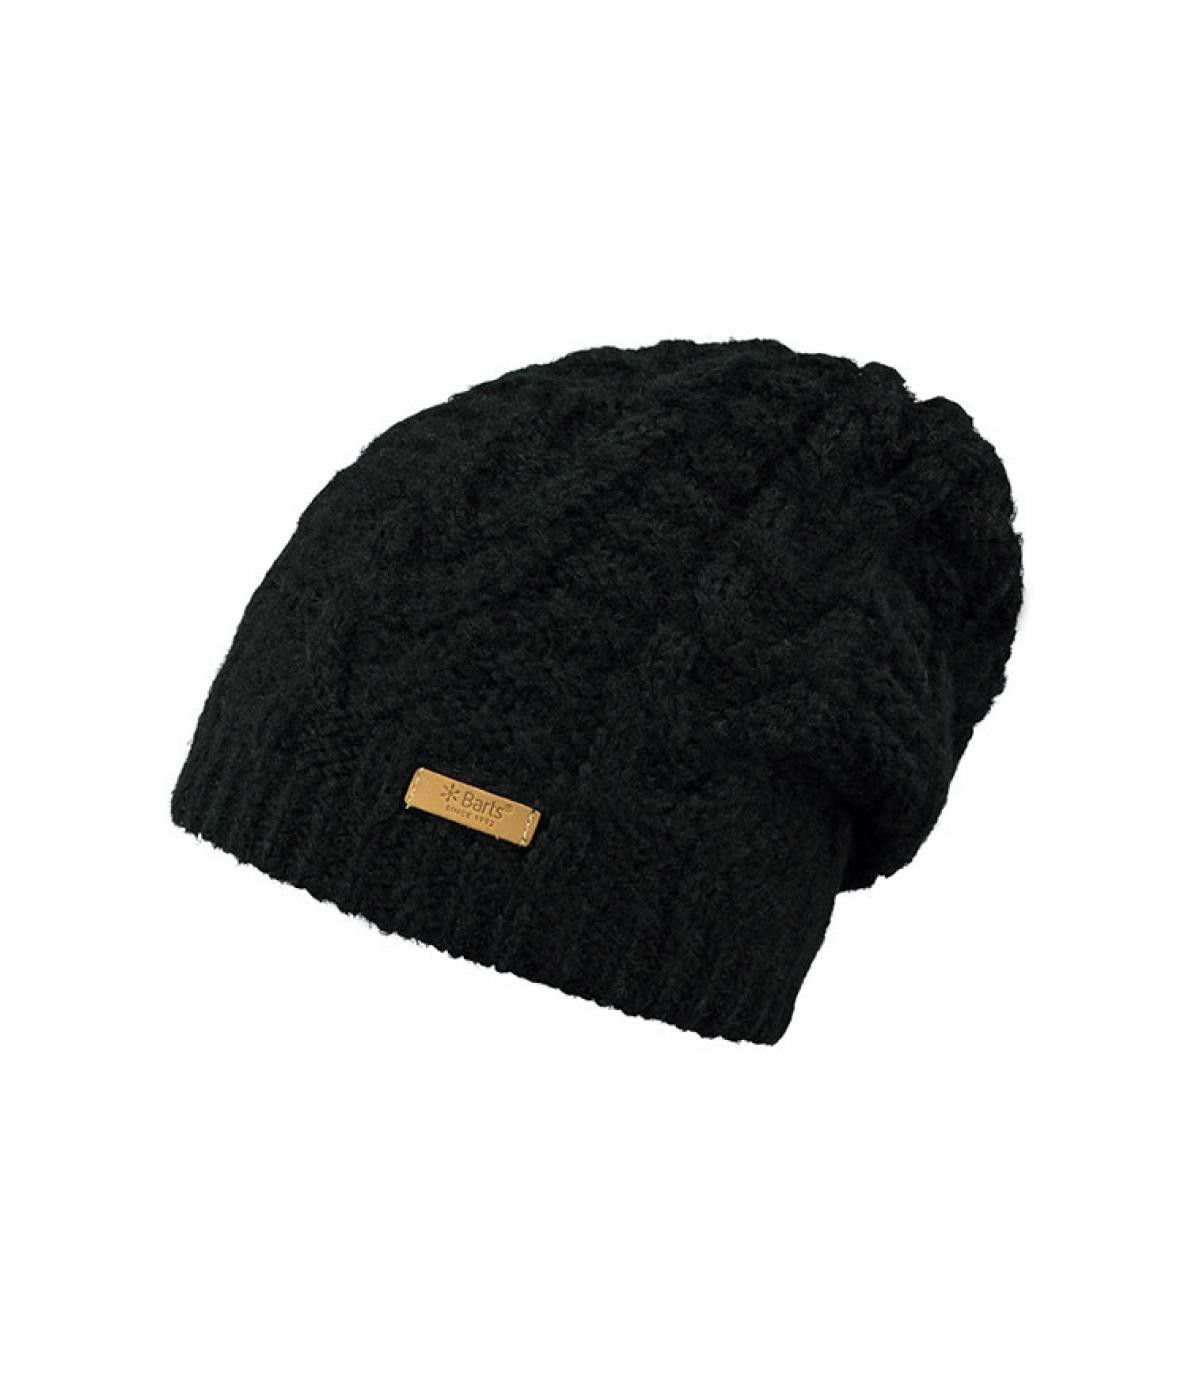 02a79bf26a7 black long cable knit beanie - Anemone Beanie black by Barts. Headict